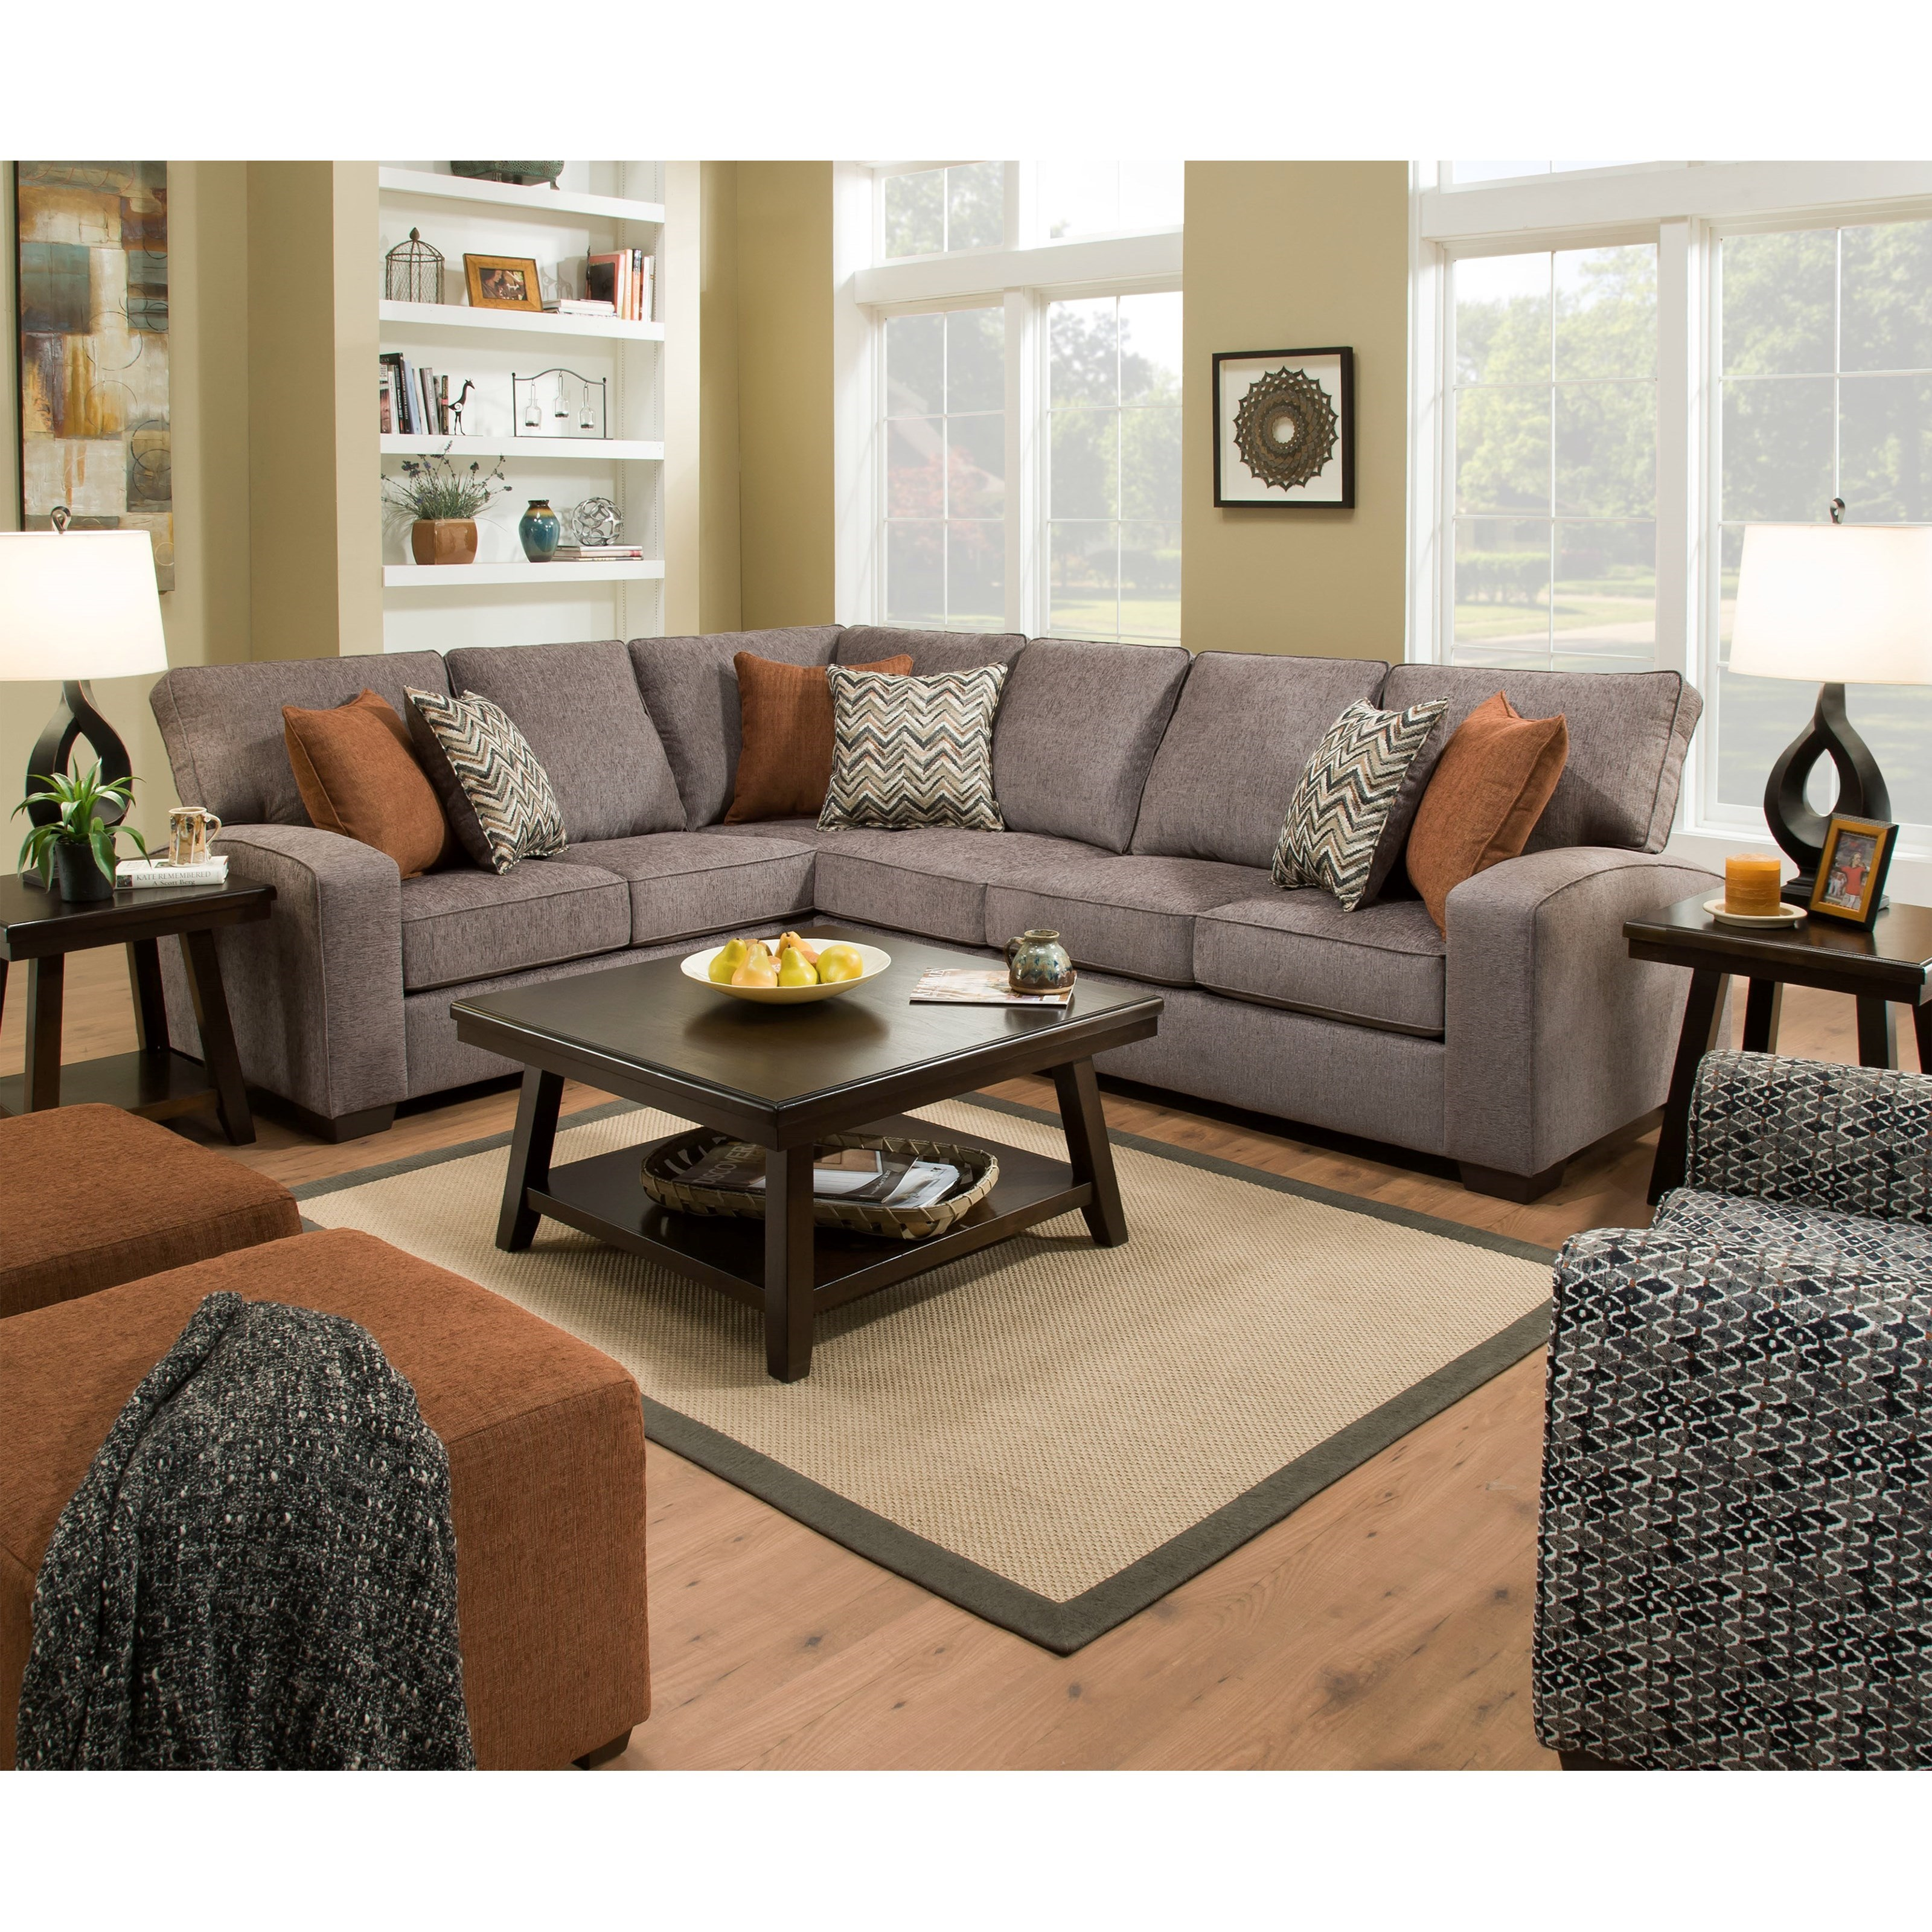 7077 Sectional by United Furniture Industries at Pilgrim Furniture City